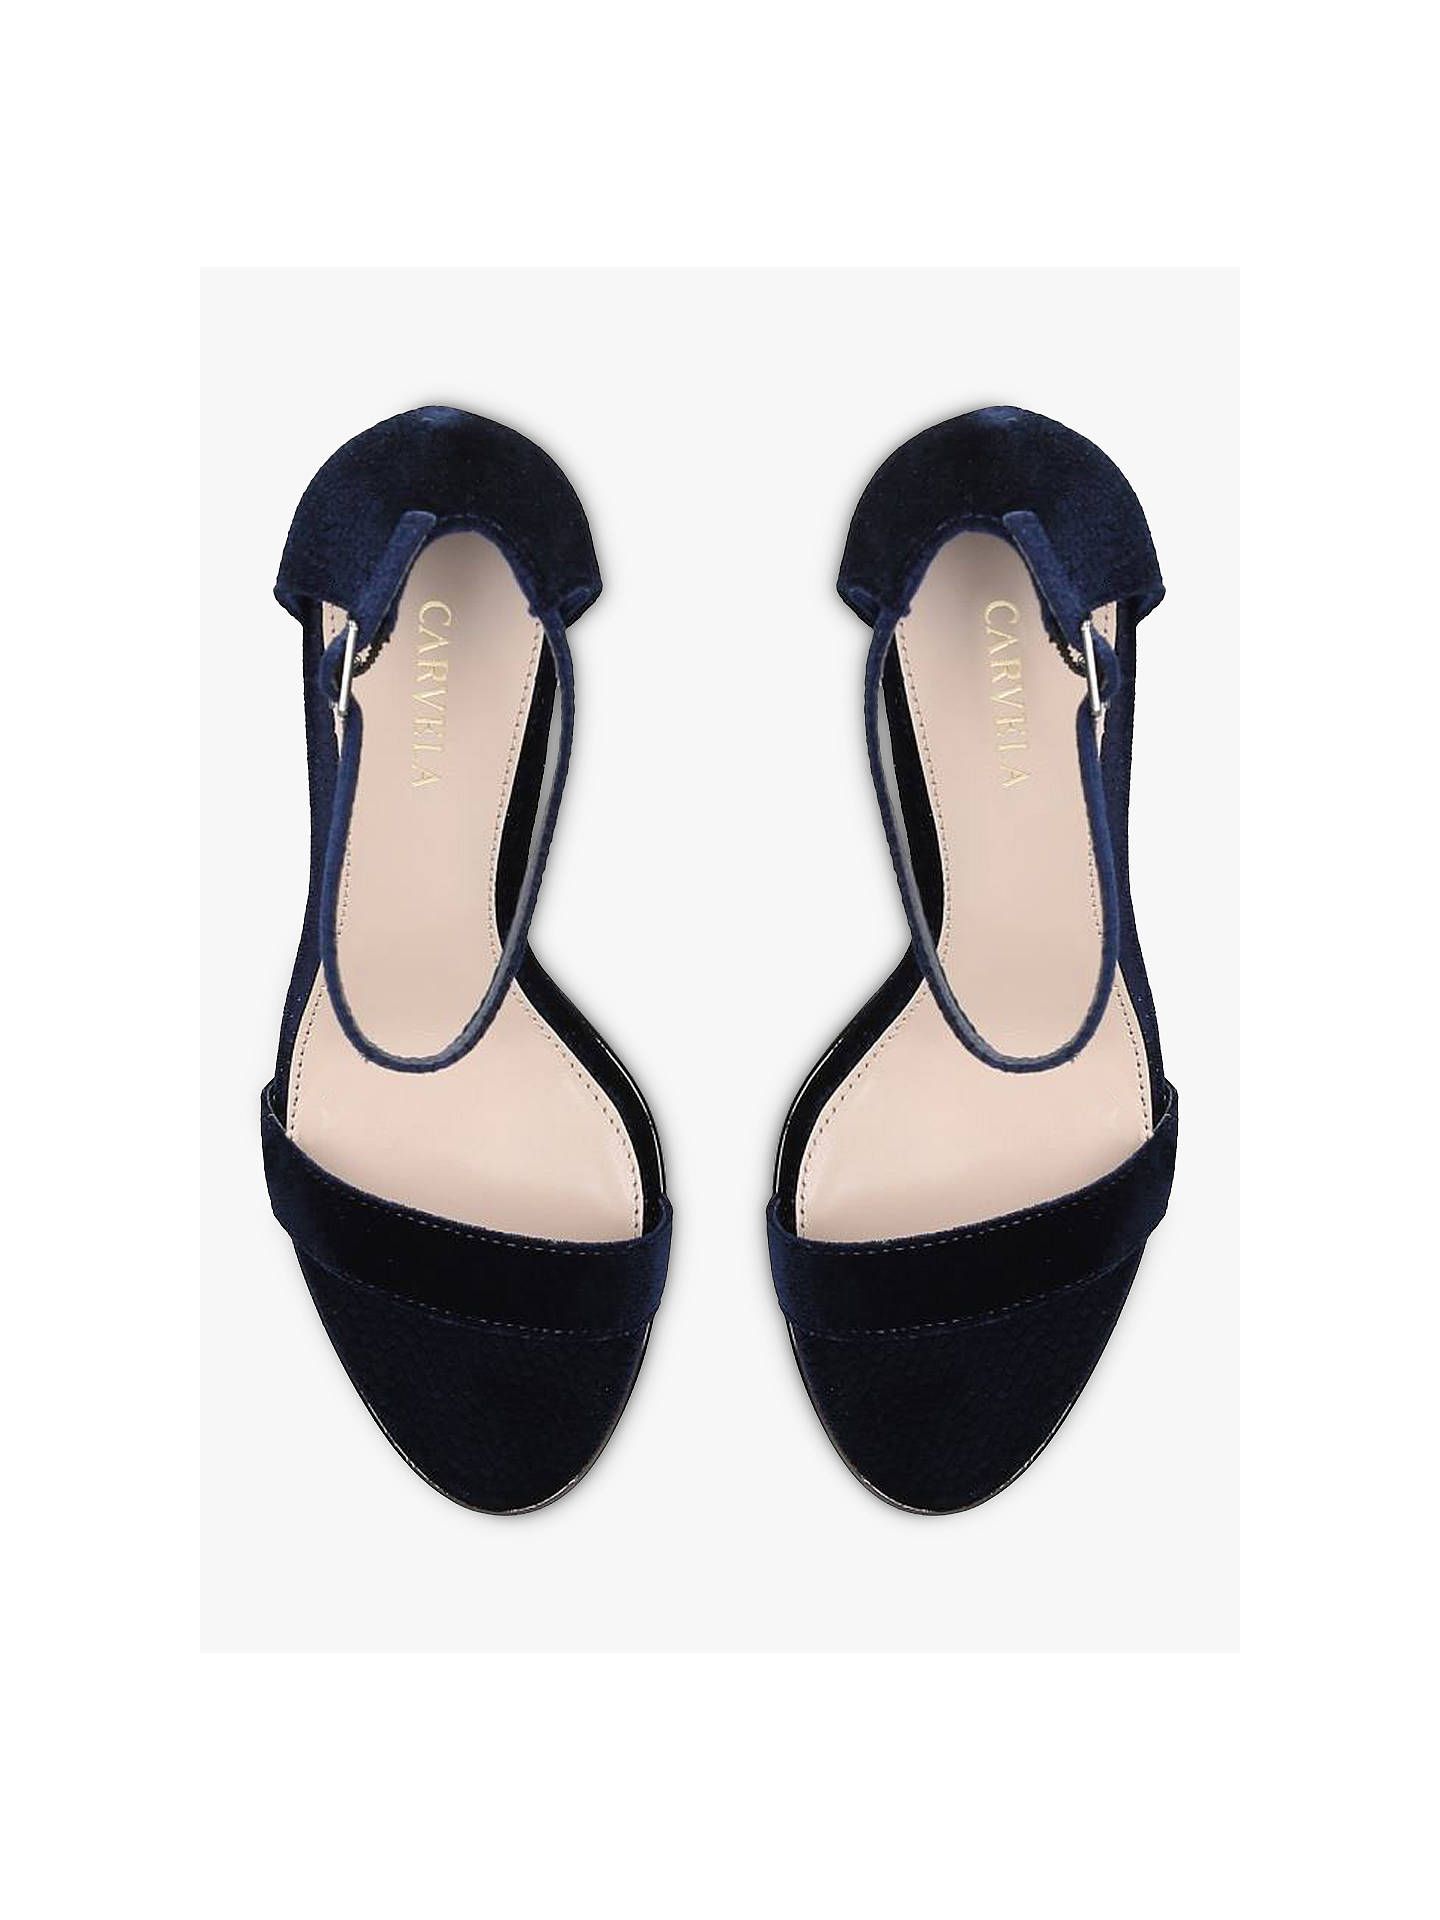 BuyCarvela Kink Stiletto Heel Sandals, Blue, 3 Online at johnlewis.com